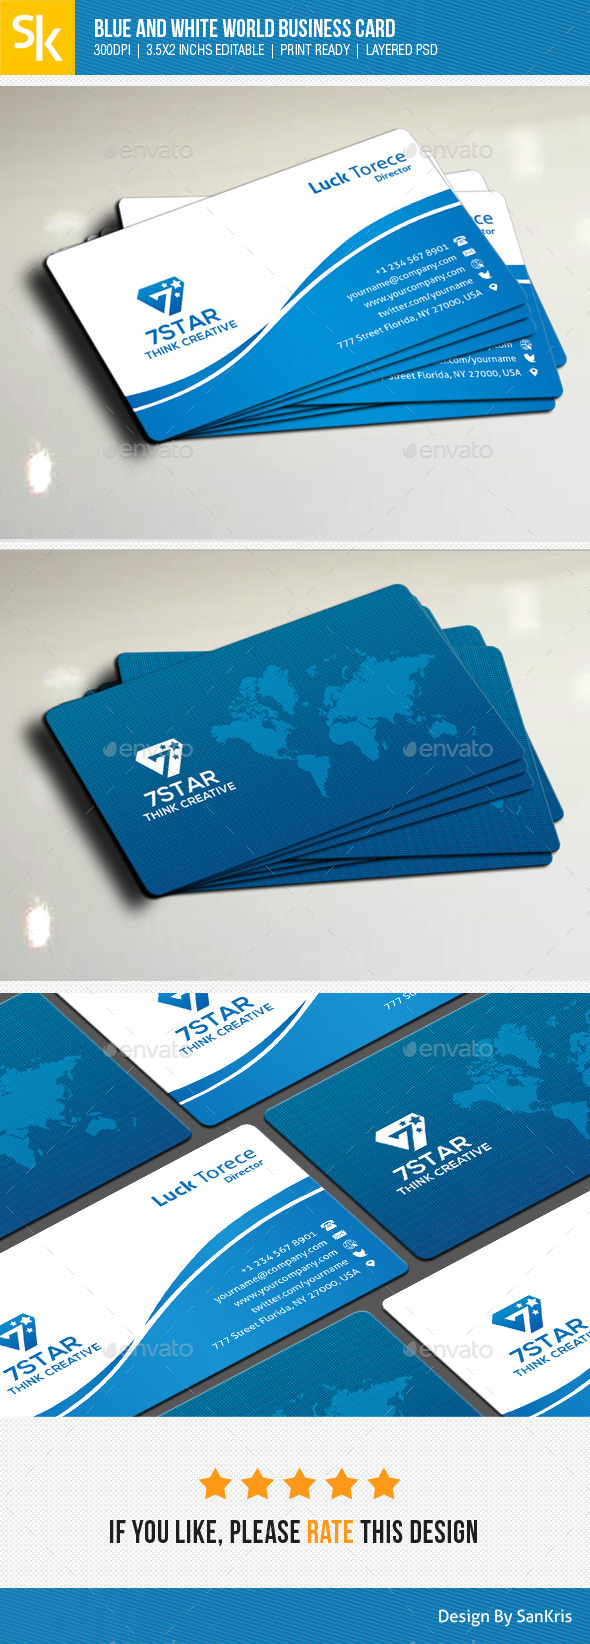 Blue And White World Business Card - Creative Business Cards